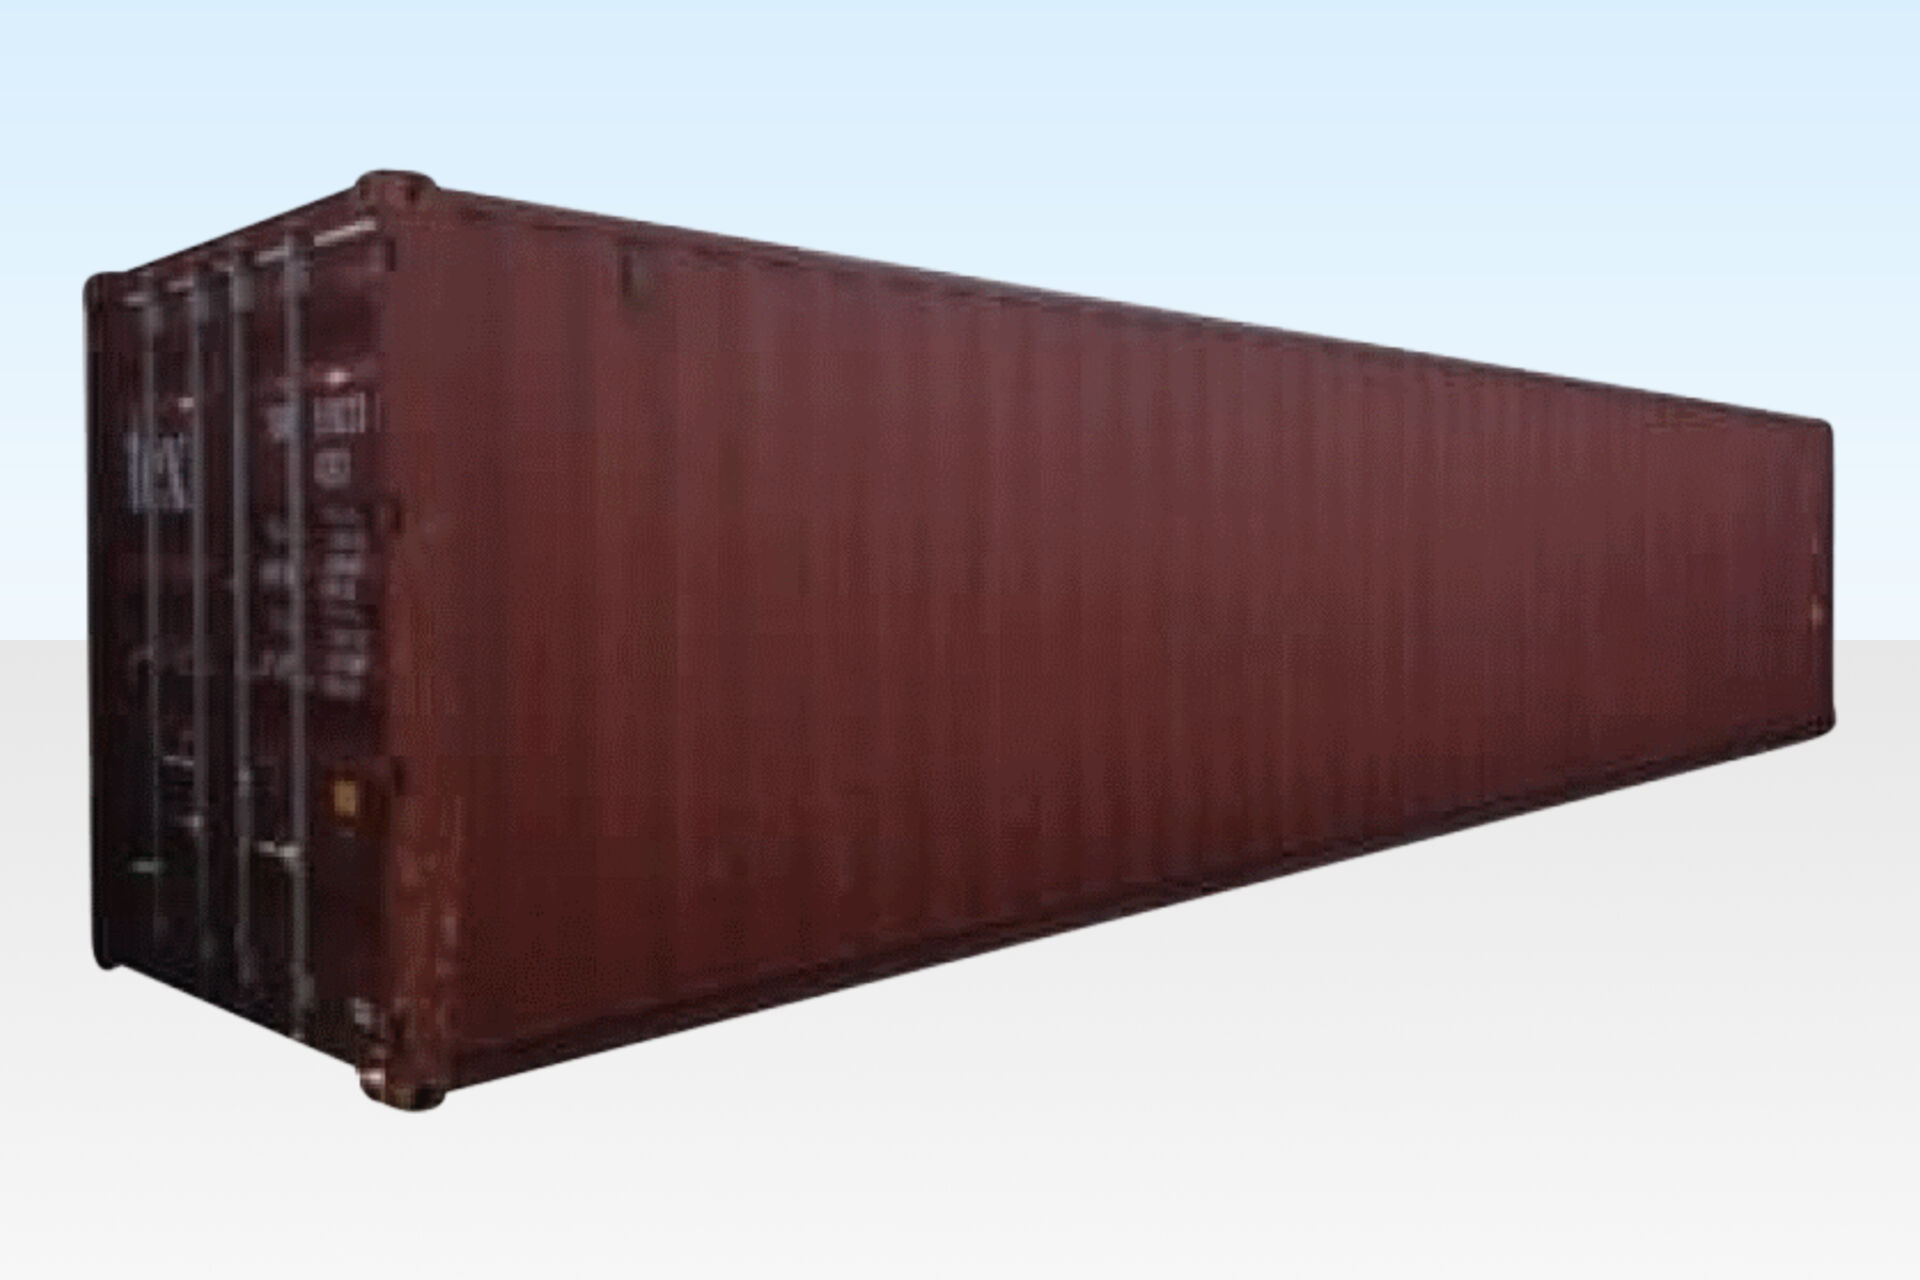 40ft Shipping Container >> 40ft Used Shipping Container Excellent Condition 1000 Vat